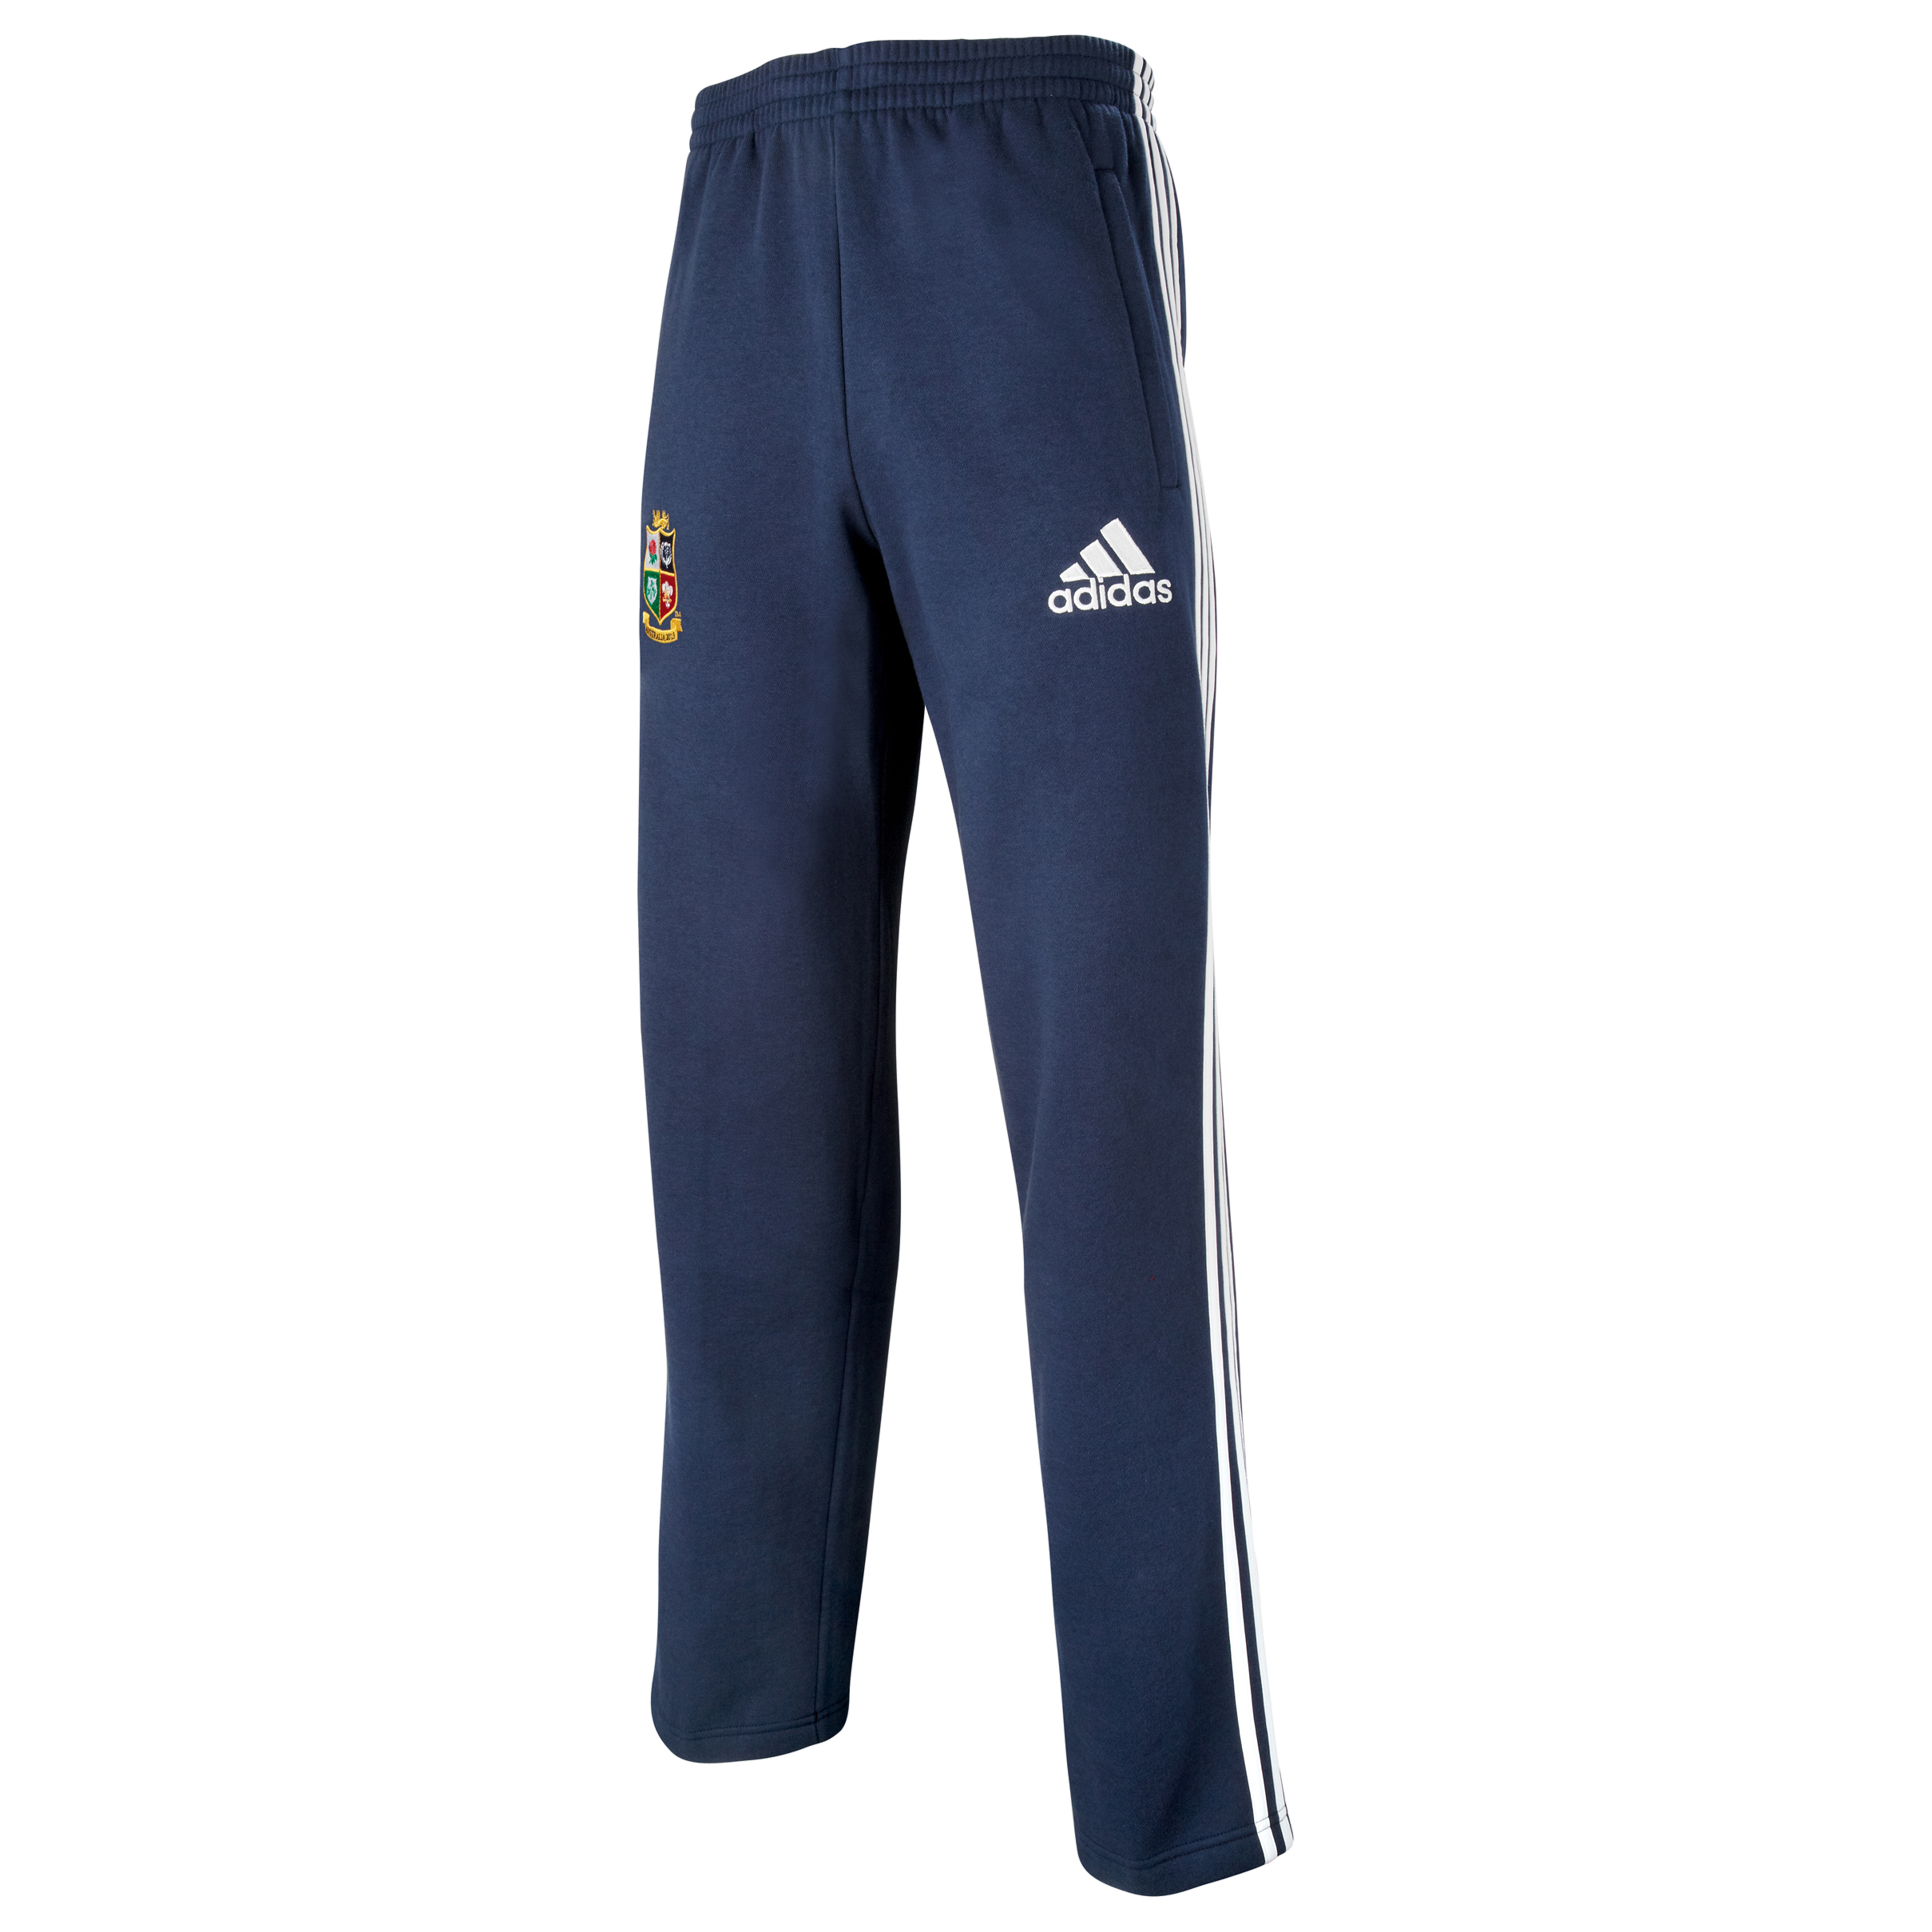 British & Irish Lions Sweat Pants - Collegiate Navy/White